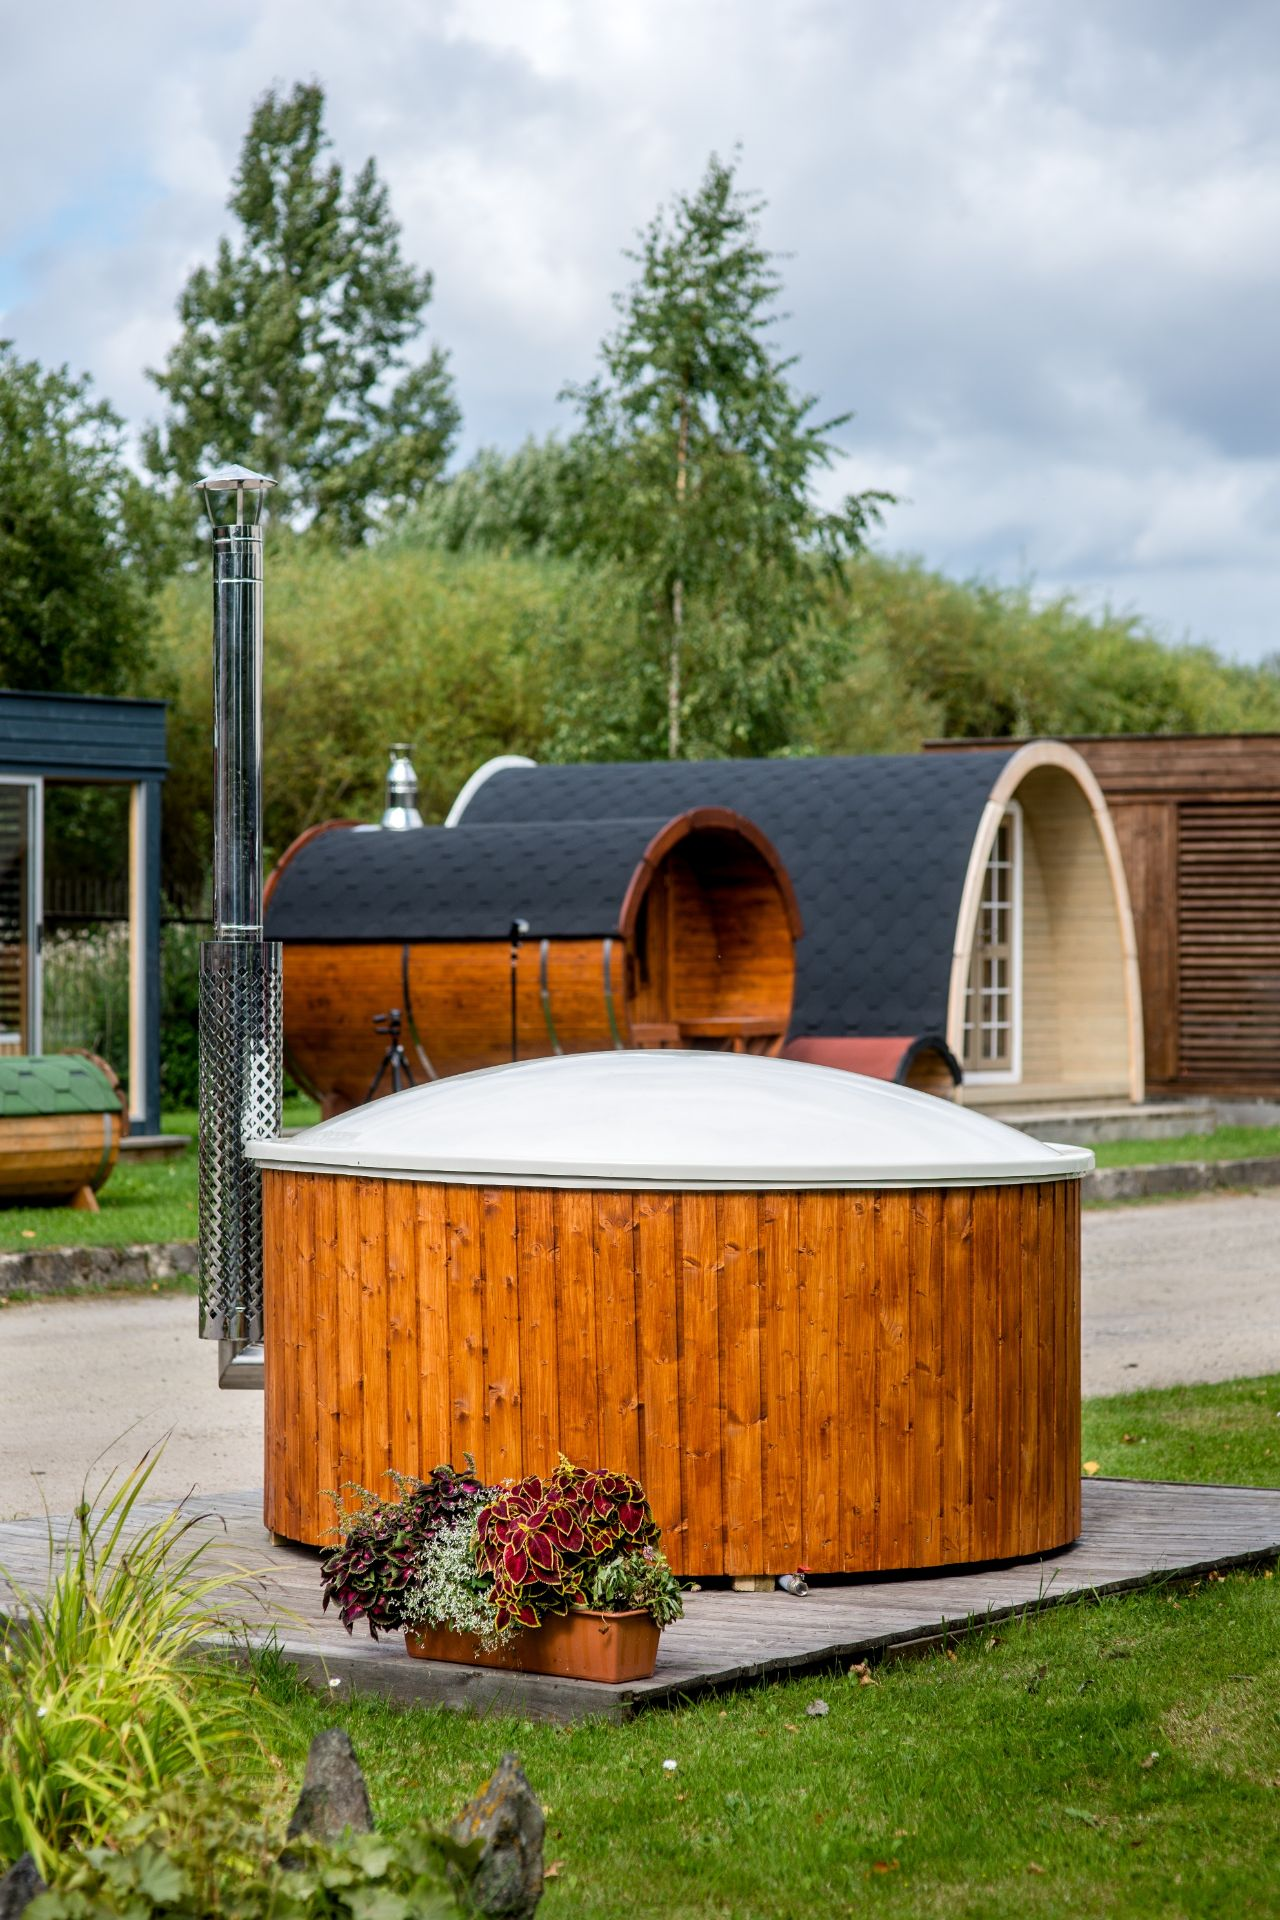 Lot 18016 - V Brand New Luxurious Extra Large Thermo Wood 1.8m Hot Tub With Air Bubble & Hydro Massage